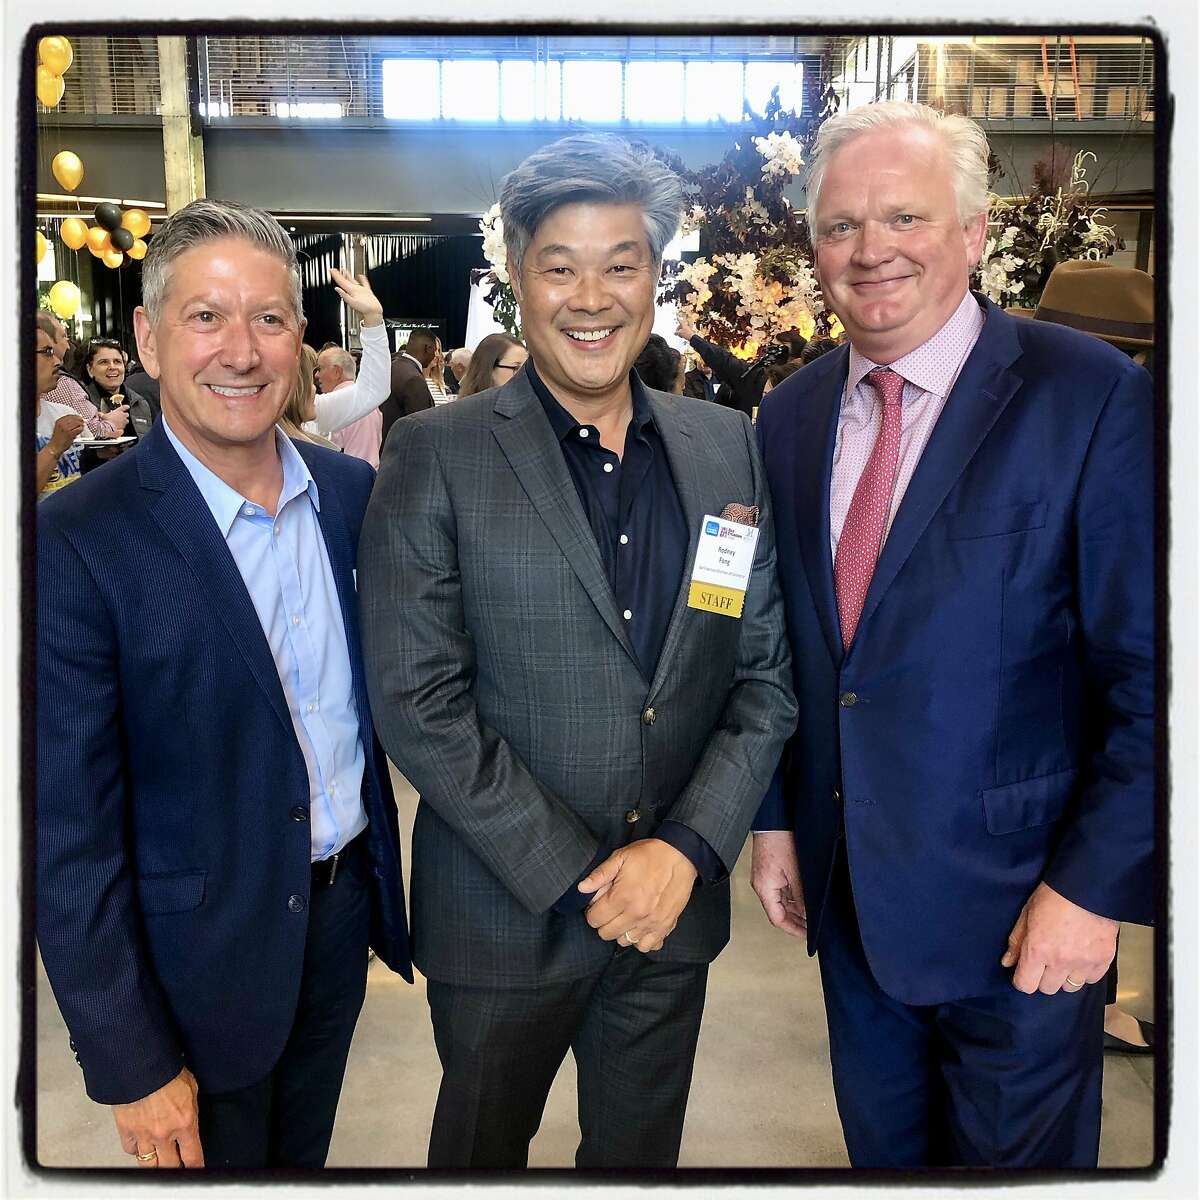 SF Travel CEO Joe D'Alessandro (left) with SF Chamber CEO Rodney Fong and McCalls President Lucas Schoemaker at Pier 70. May 29, 2019.